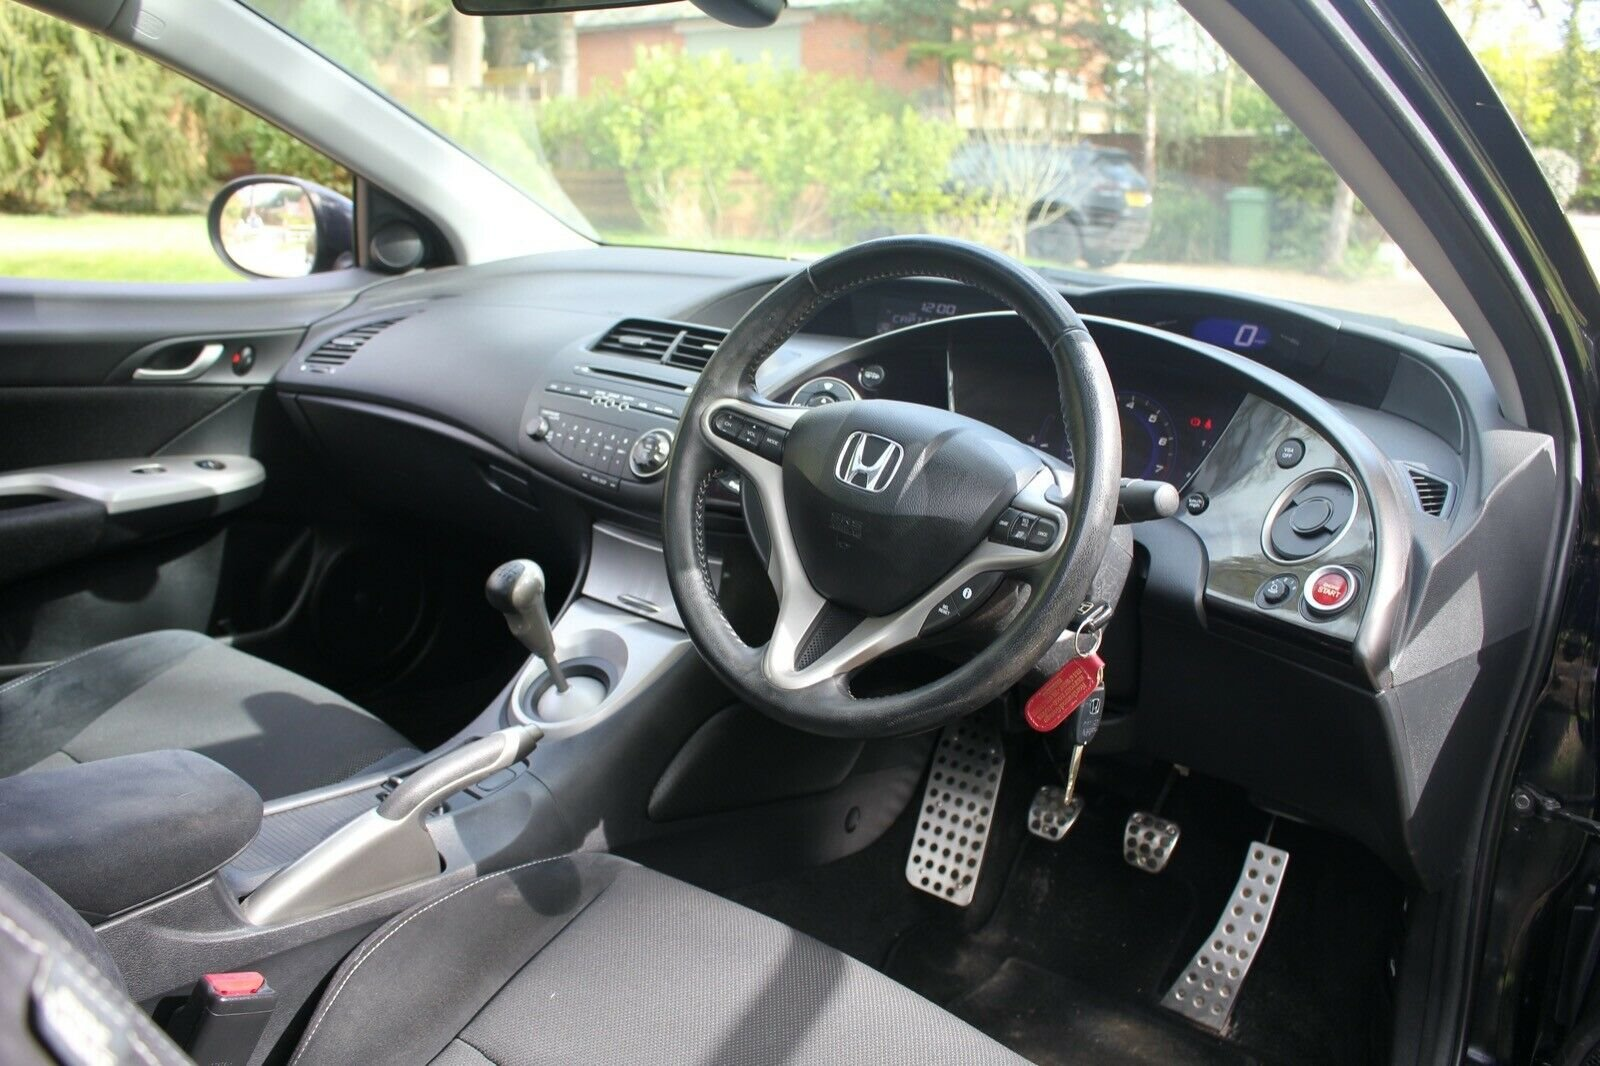 2009 Honda civic type s gt 1.8 FULL Honda service histo For Sale (picture 3 of 5)